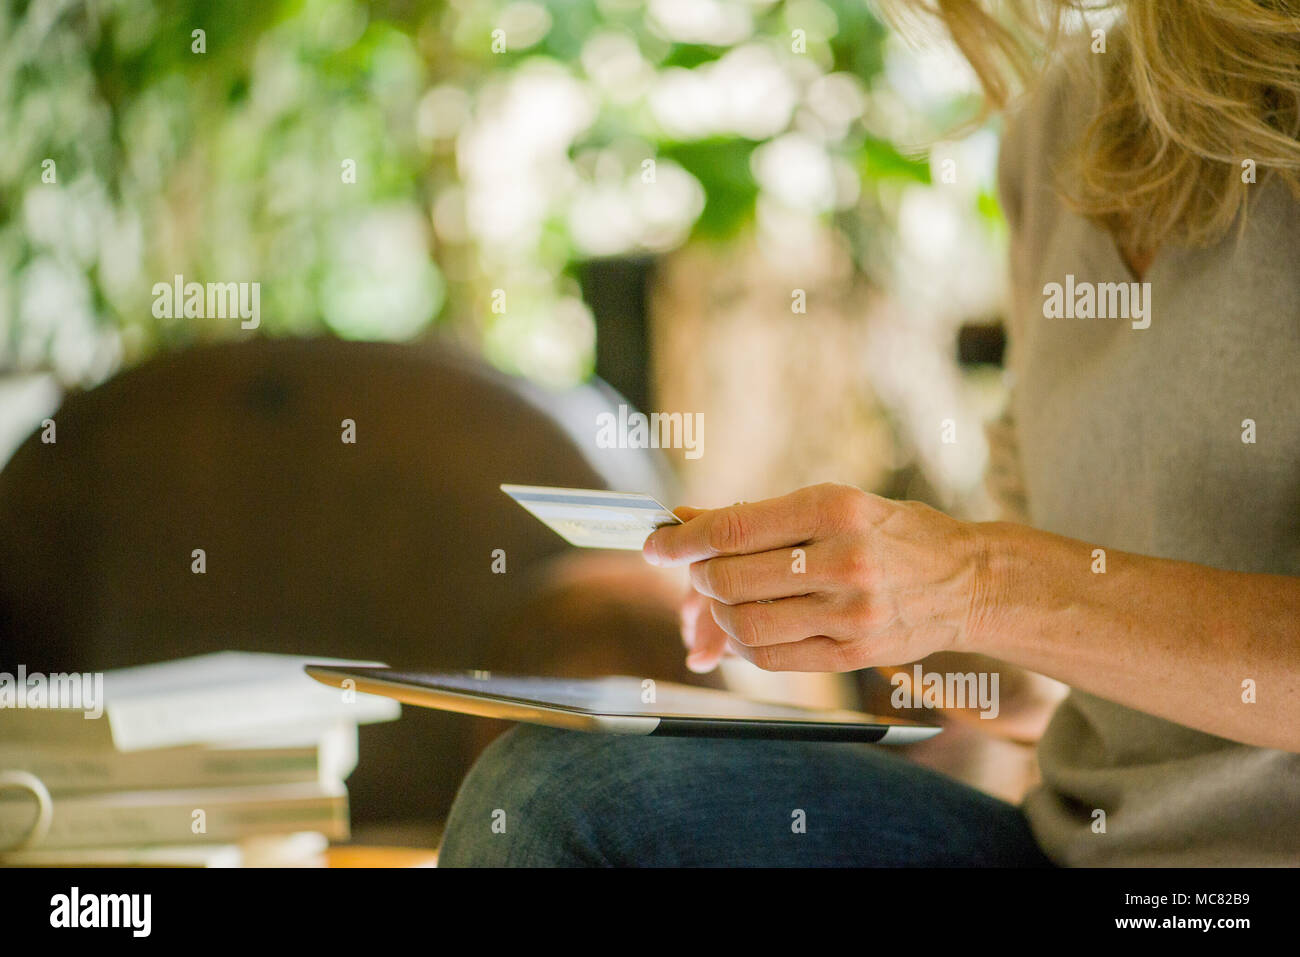 Woman using digital tablet and credit card, cropped - Stock Image